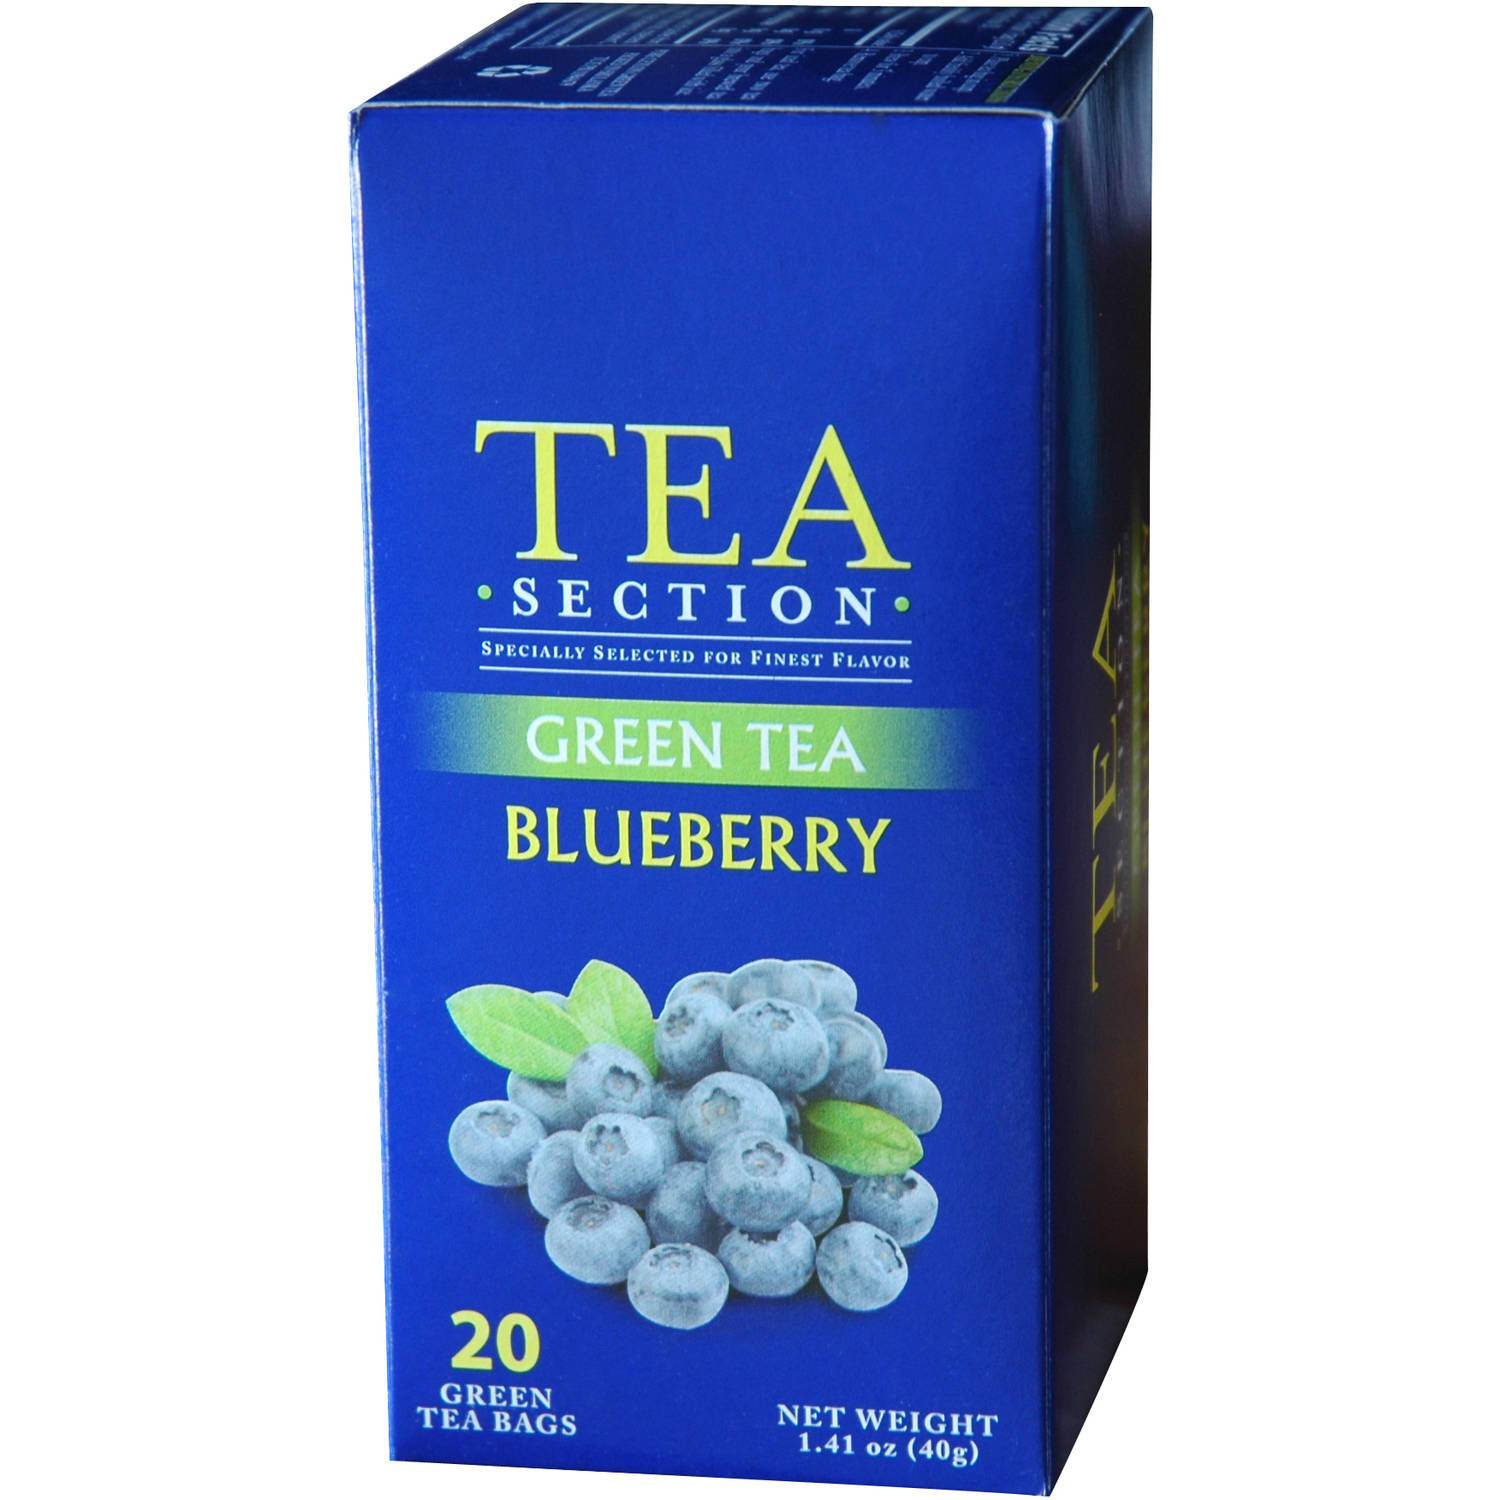 Tea Section Blueberry Green Tea Bags, 20 count, 1.41 oz